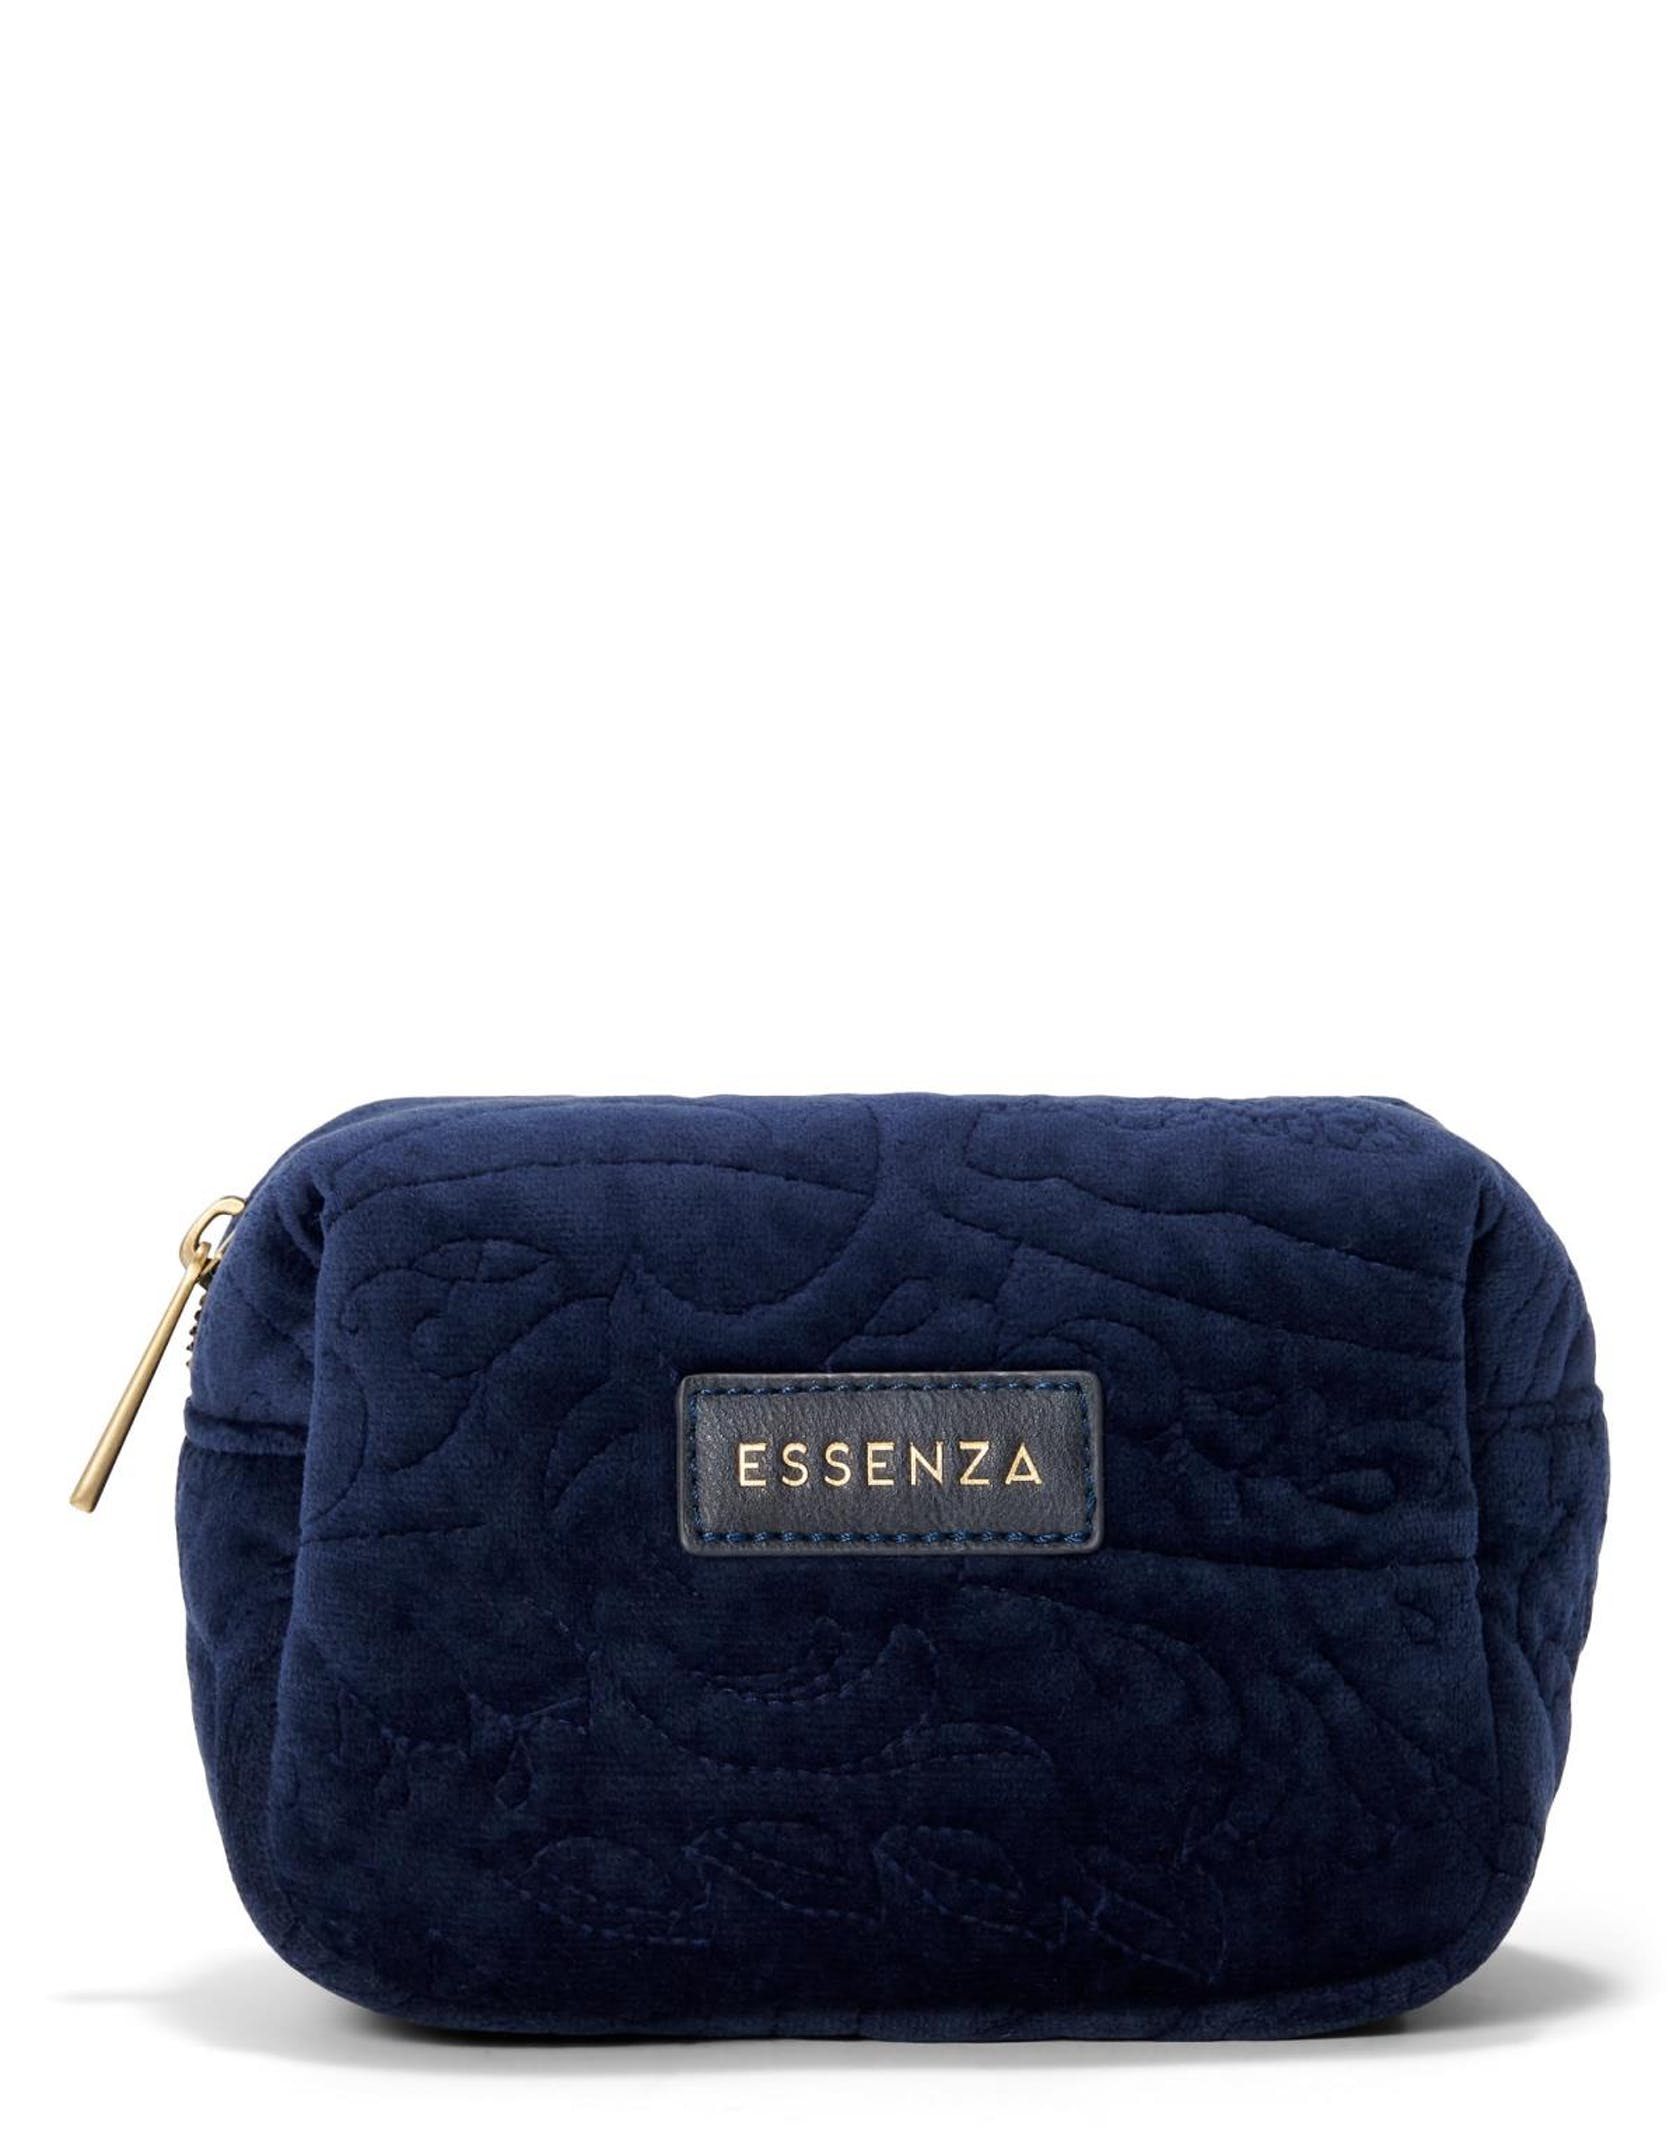 ESSENZA Lucy Velvet Indigo blue Make-up Bag Small